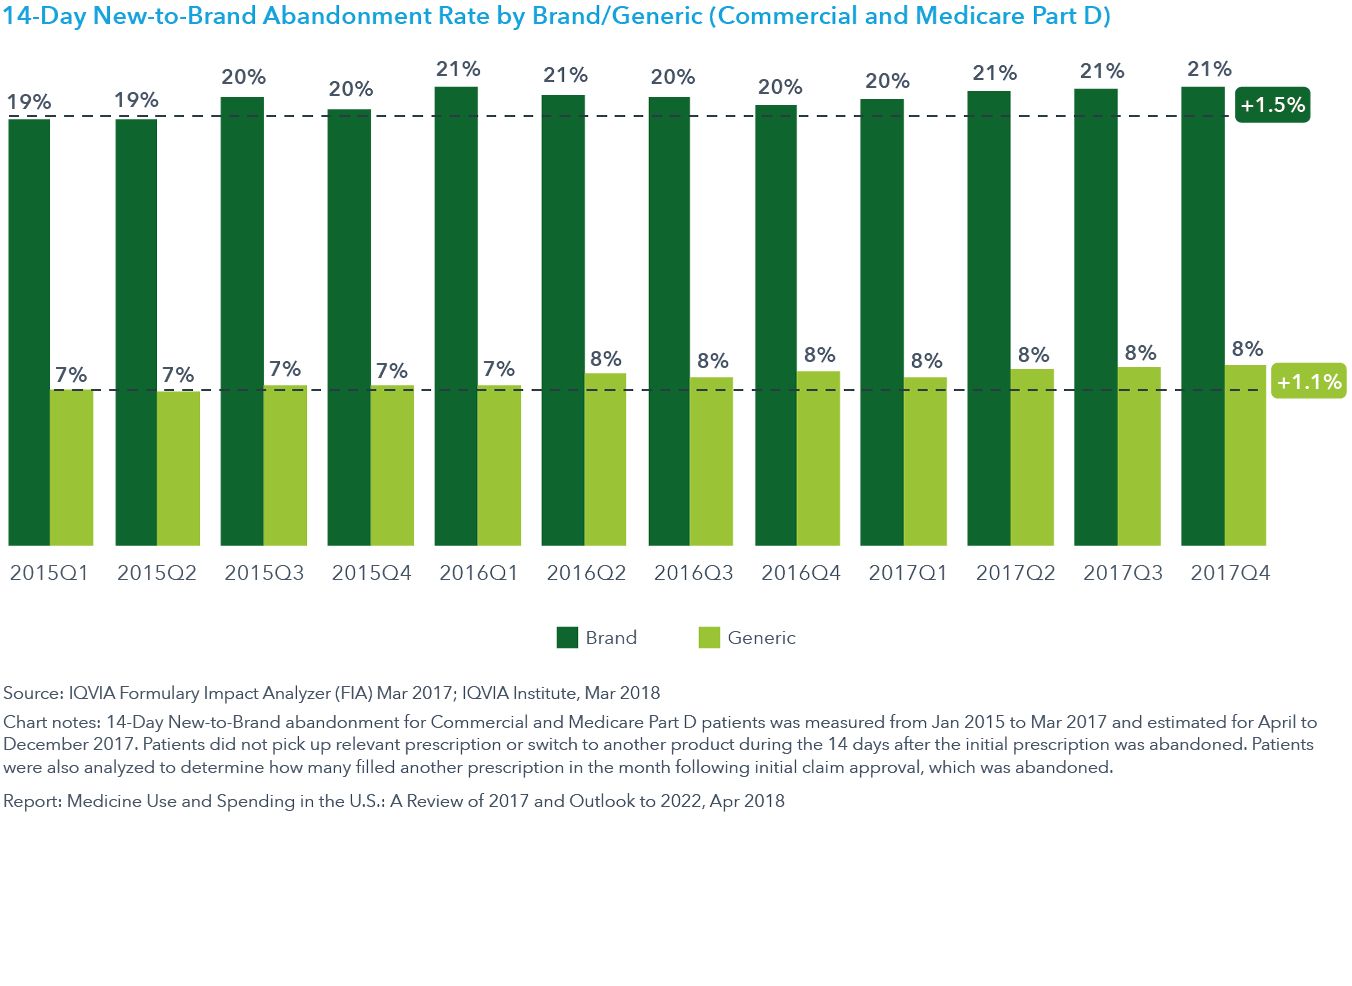 Chart 26: 14-Day New-to-Brand Abandonment Rate by Brand/Generic (Commercial and Medicare Part D)